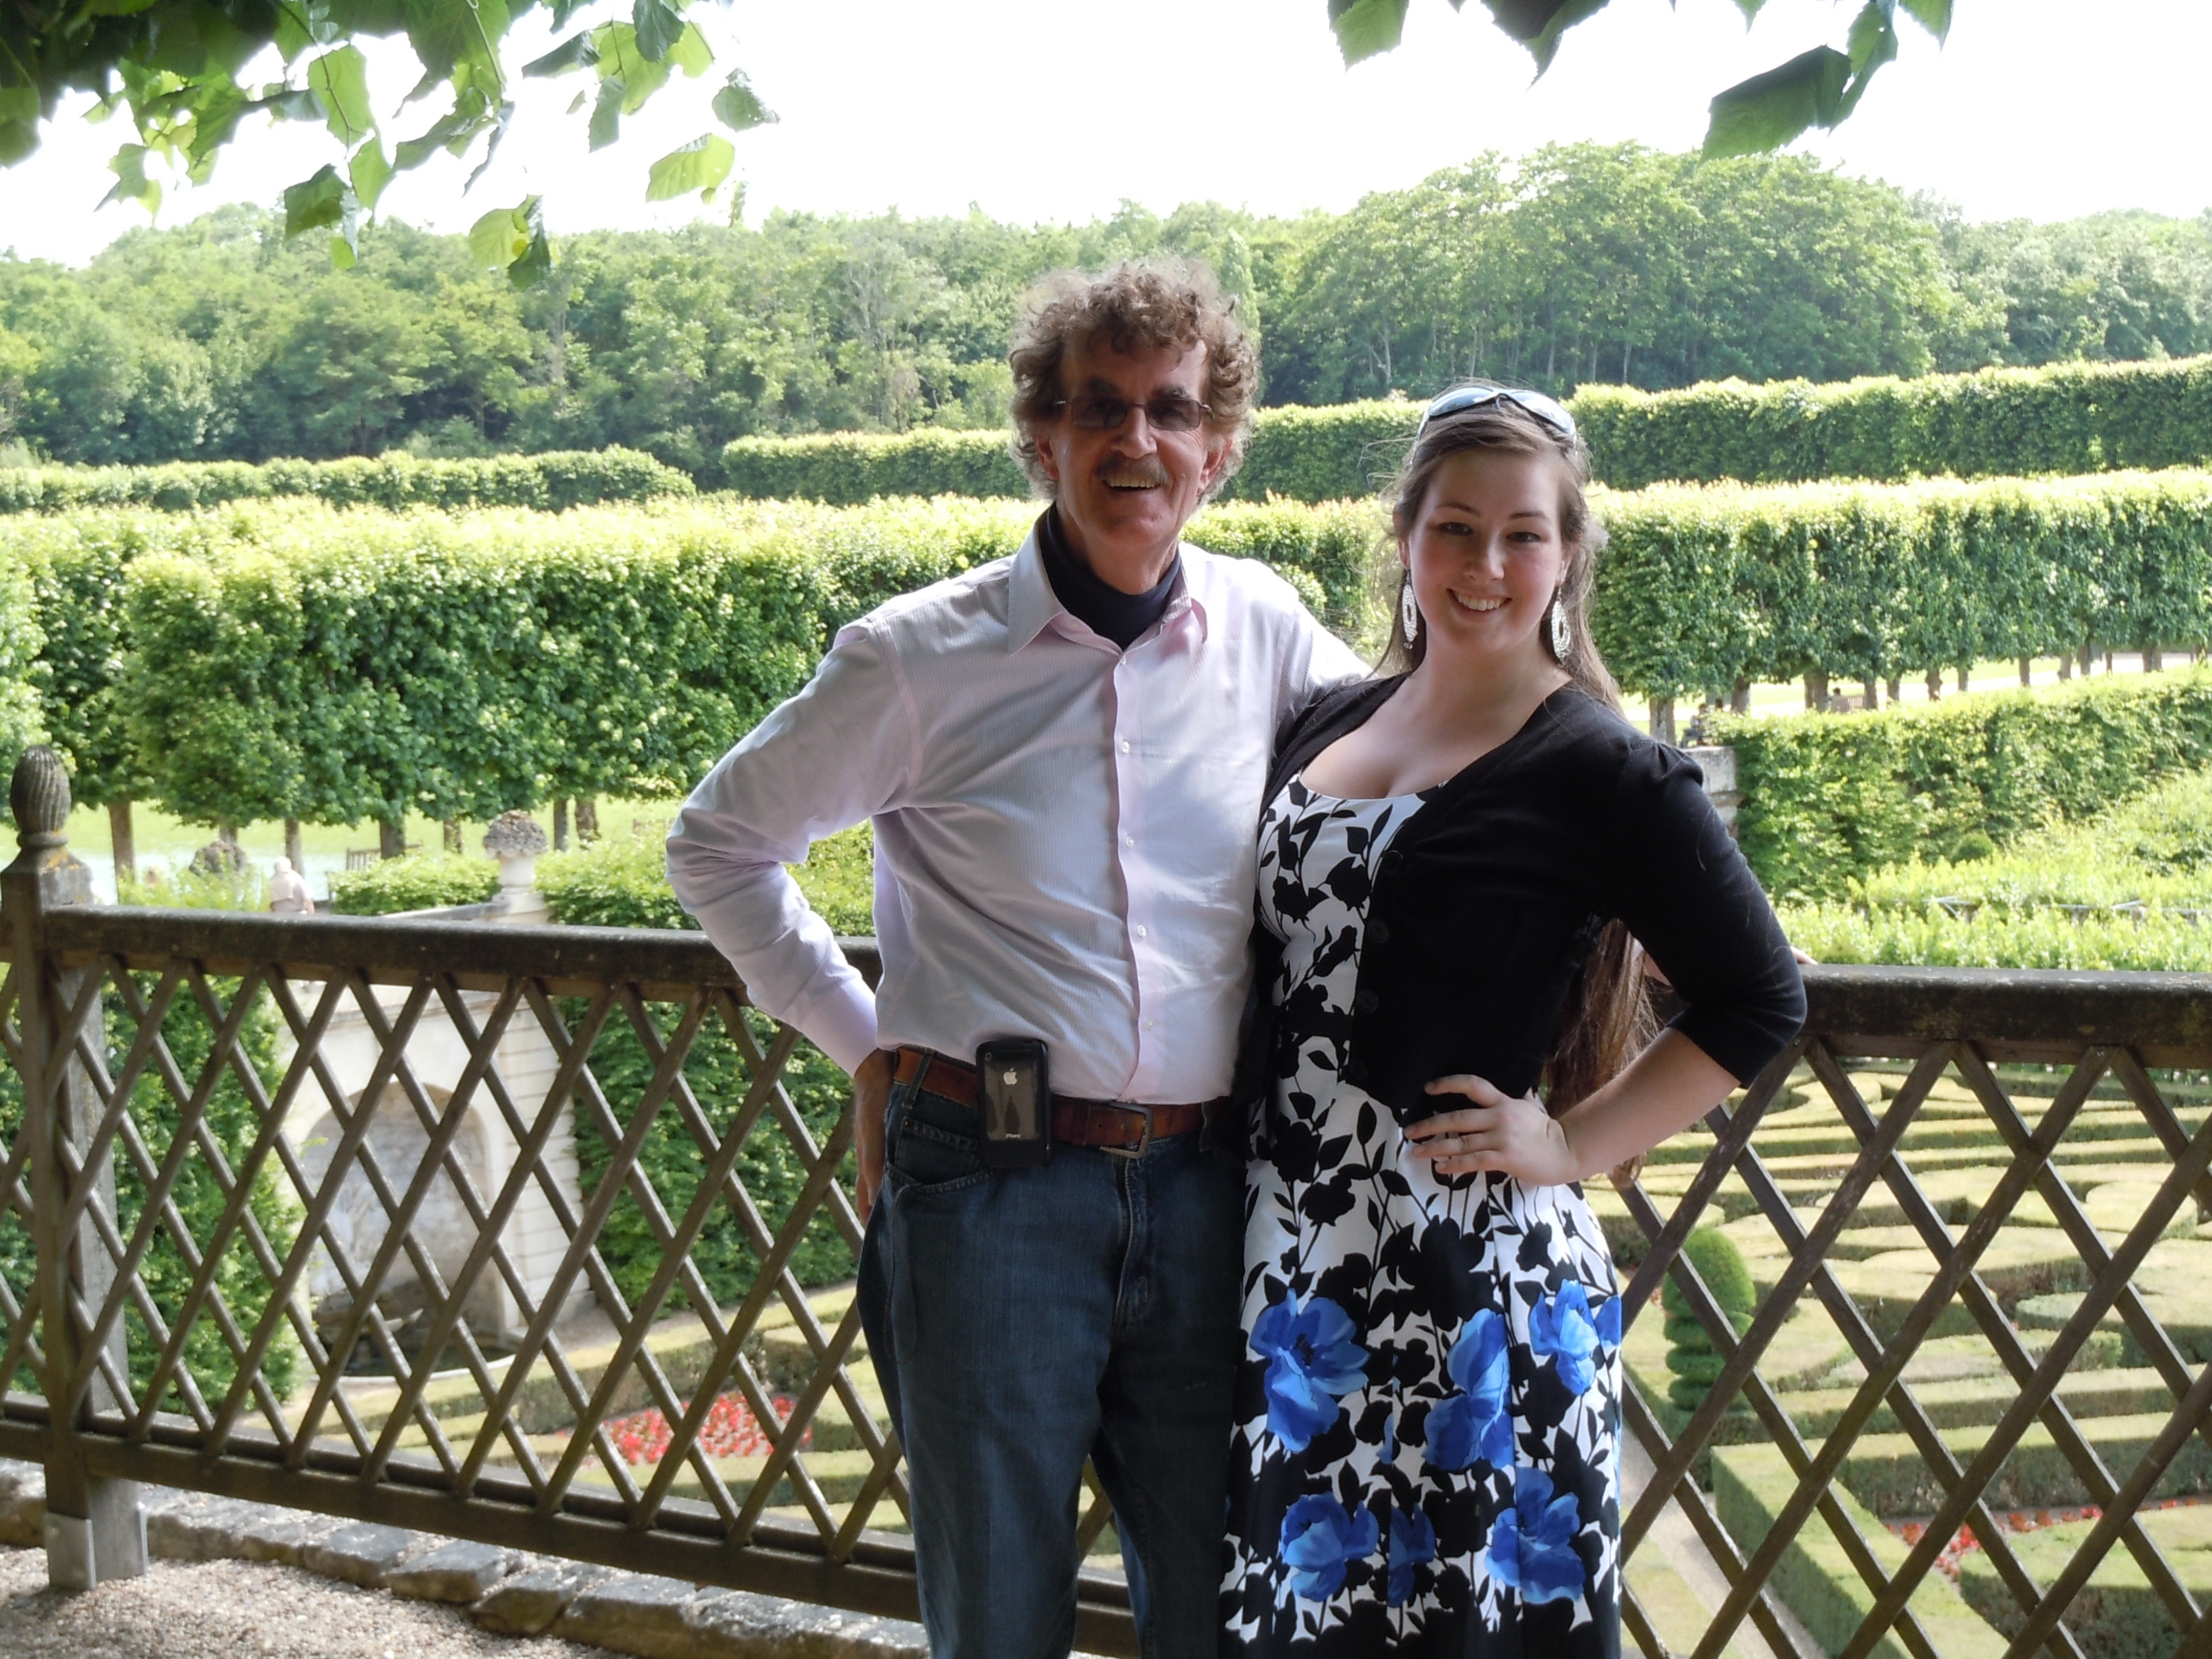 Trip to the Gardens in the Loire Valley made beautiful memories and photos